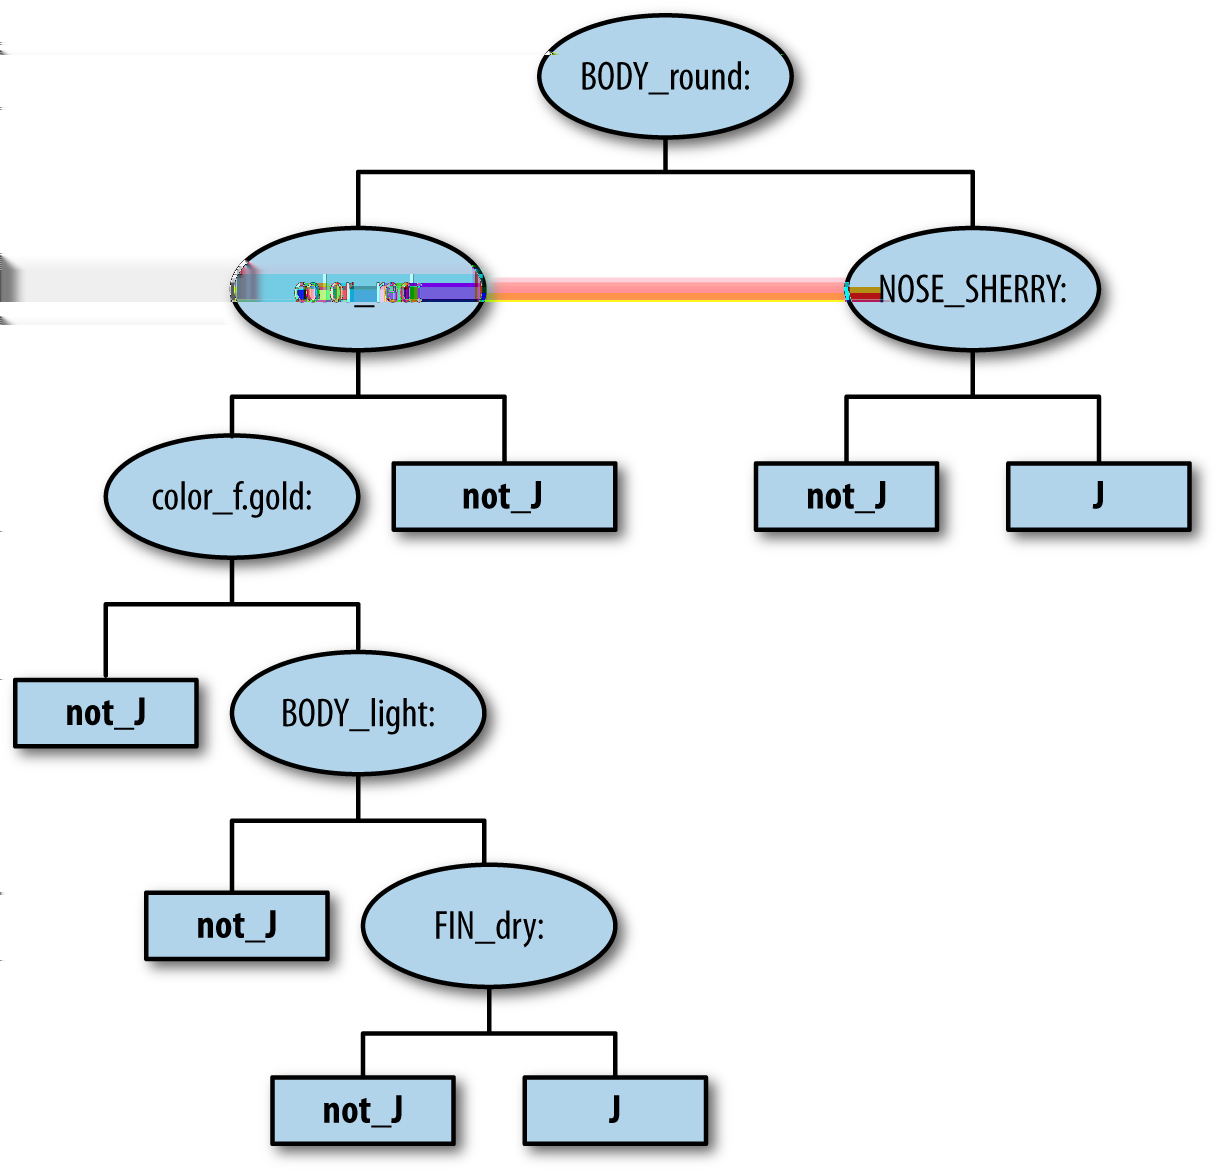 Figure 6-14. The decision tree learned from cluster J on the Scotches data.